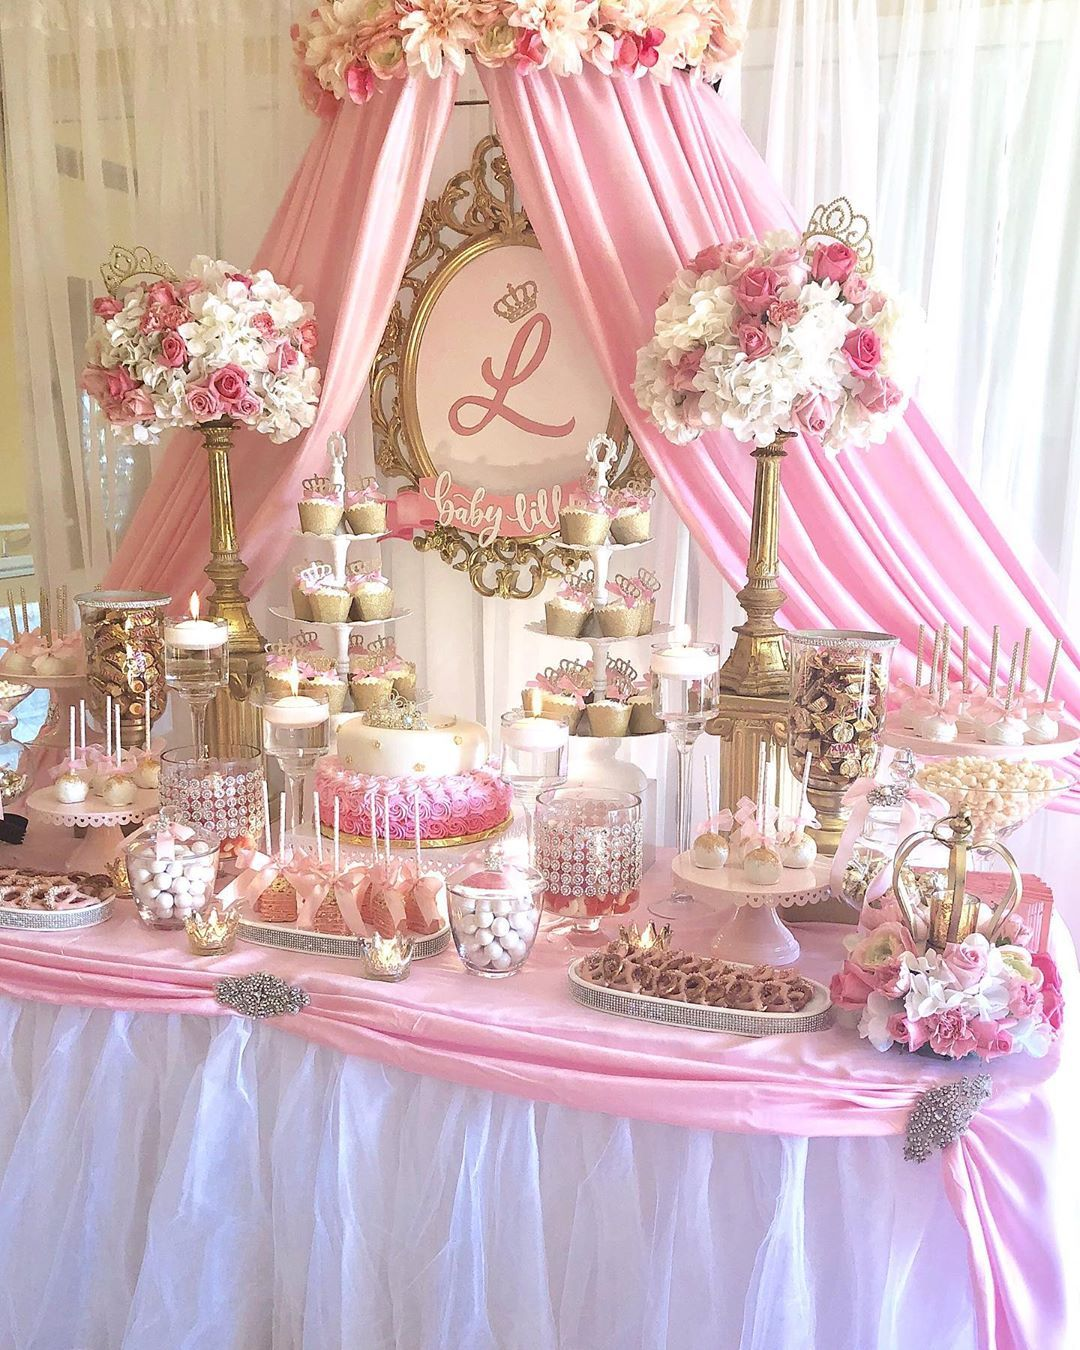 Sweet Dreams Candy Tables On Instagram Princess Baby Shower Candy Buffet Florals Sweetdreamsbydana C In 2020 Baby Shower Princess Candy Buffet Tea Party Table